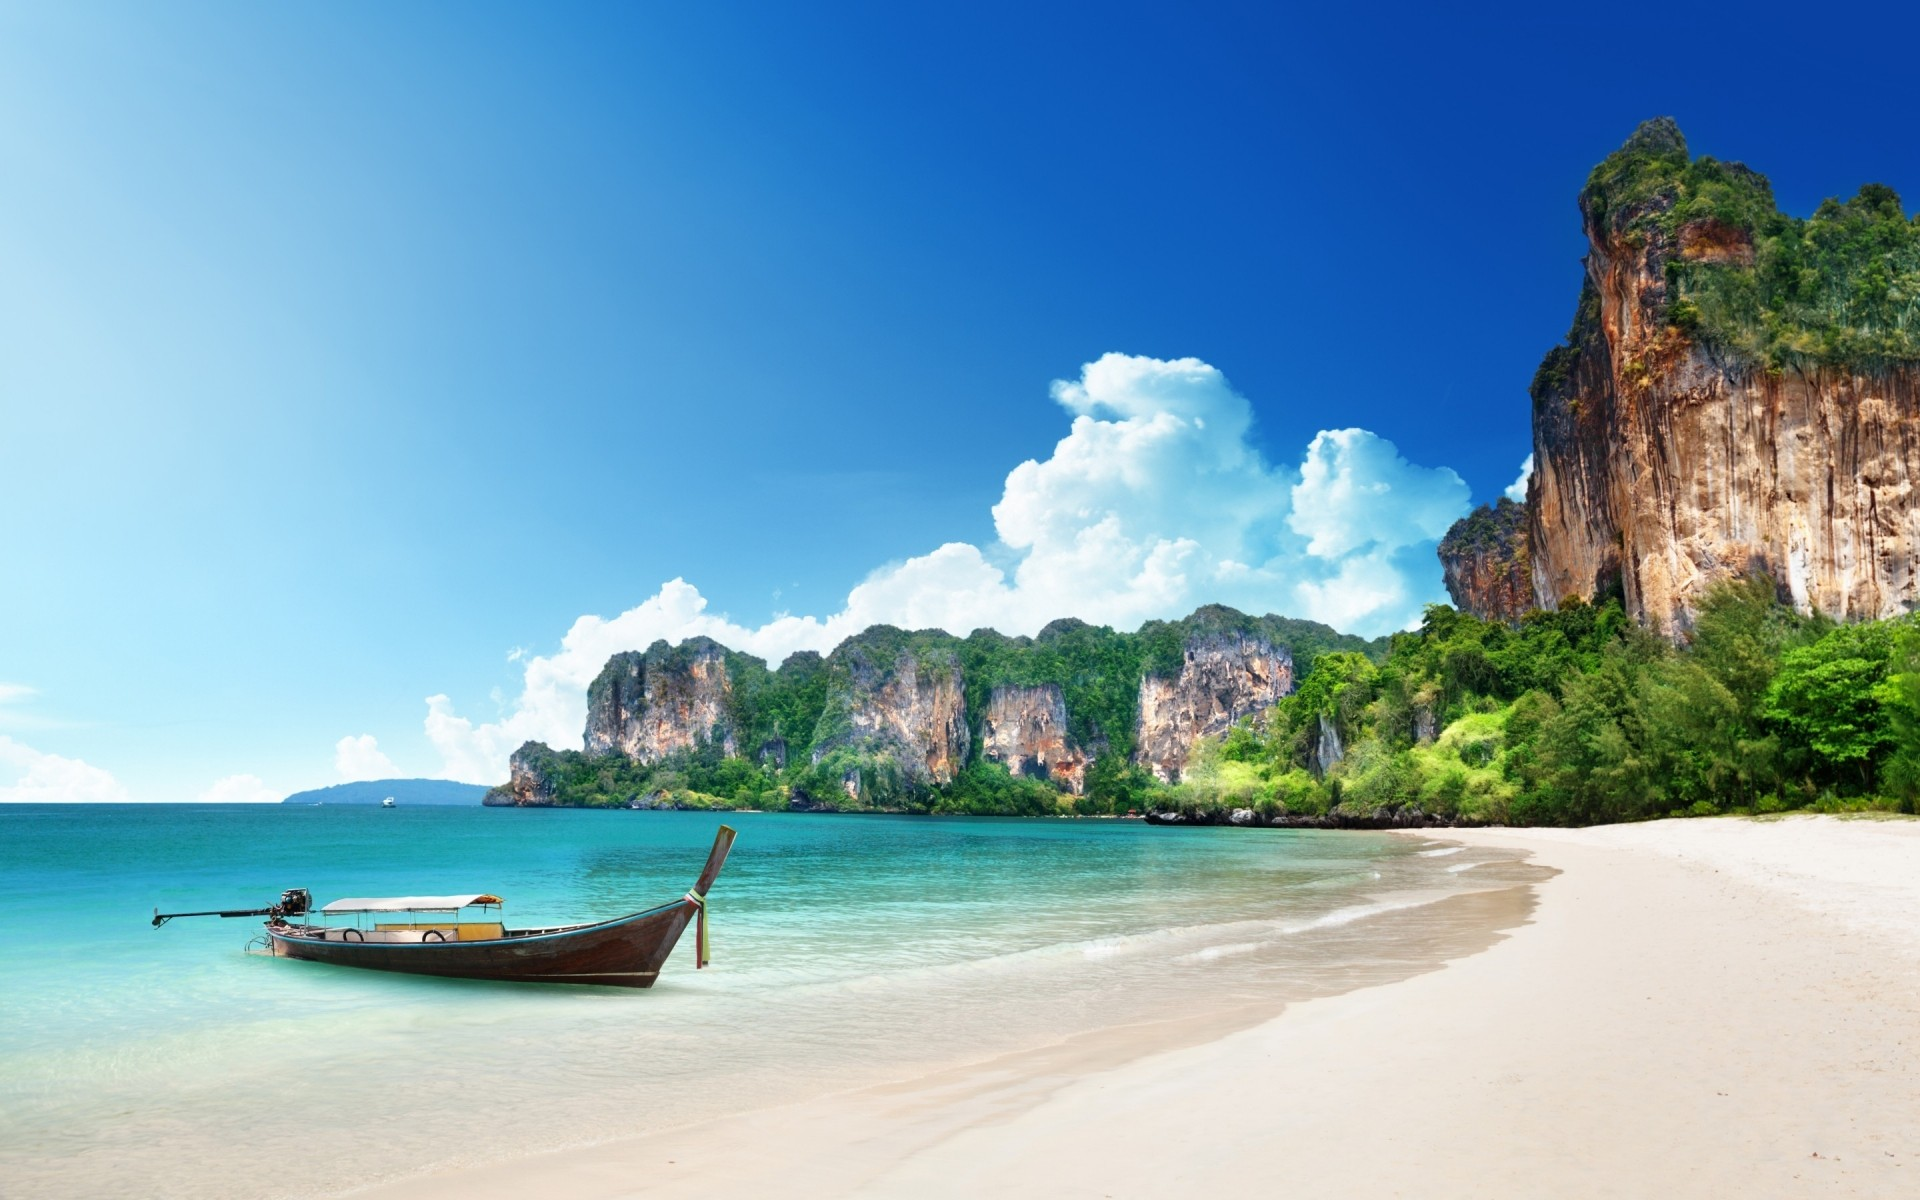 landscapes seashore travel beach water tropical island sand turquoise ocean idyllic vacation summer sea seascape bay exotic relaxation nature paradise boat landscape